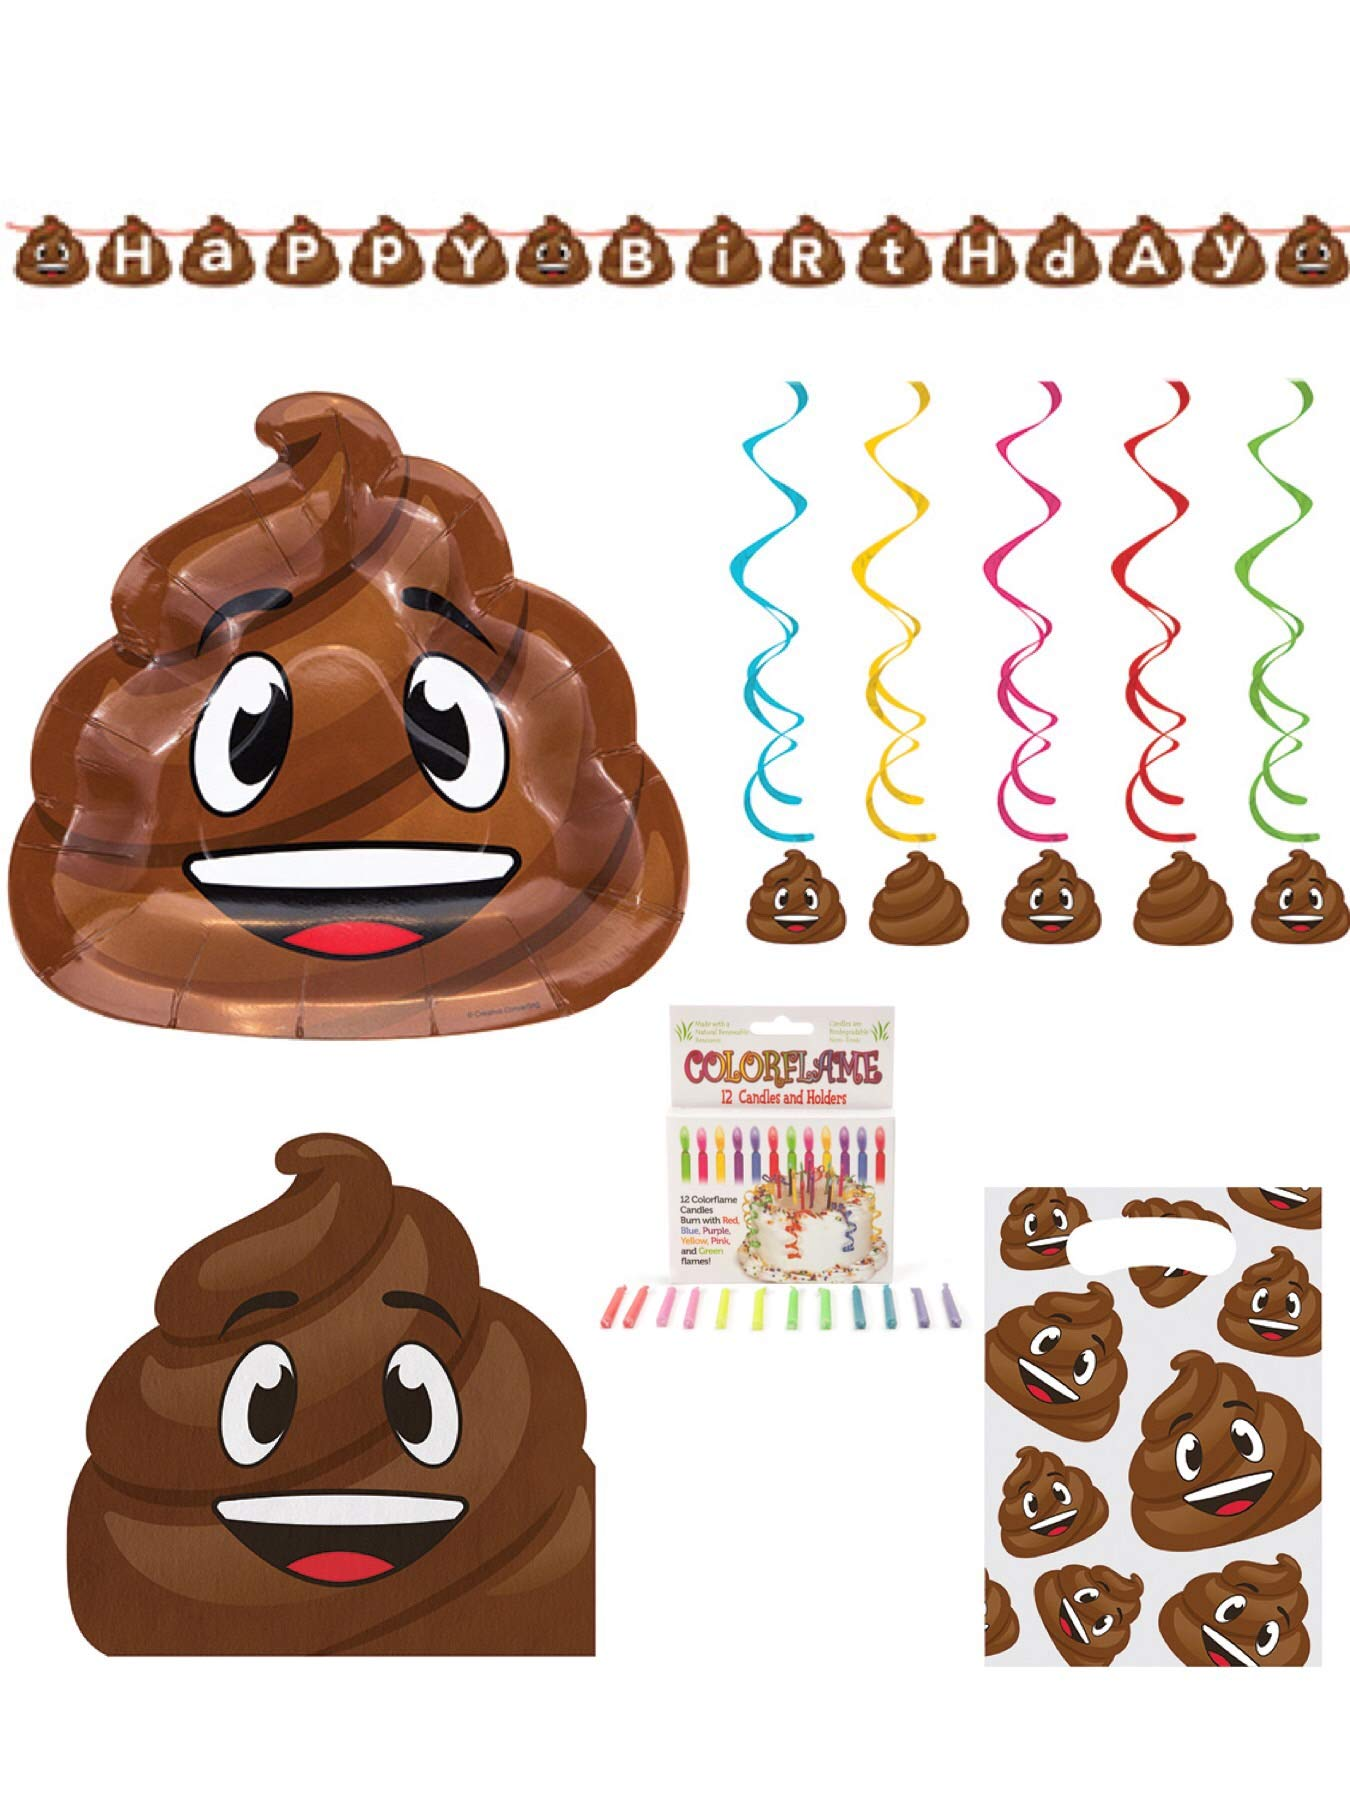 Olive Occasions Crap Poop Happy Birthday Disposable Paper Party Supplies 16 Plates, 16 Napkins, Banner, Dizzy Danglers, Loots Bags, 12 Candles